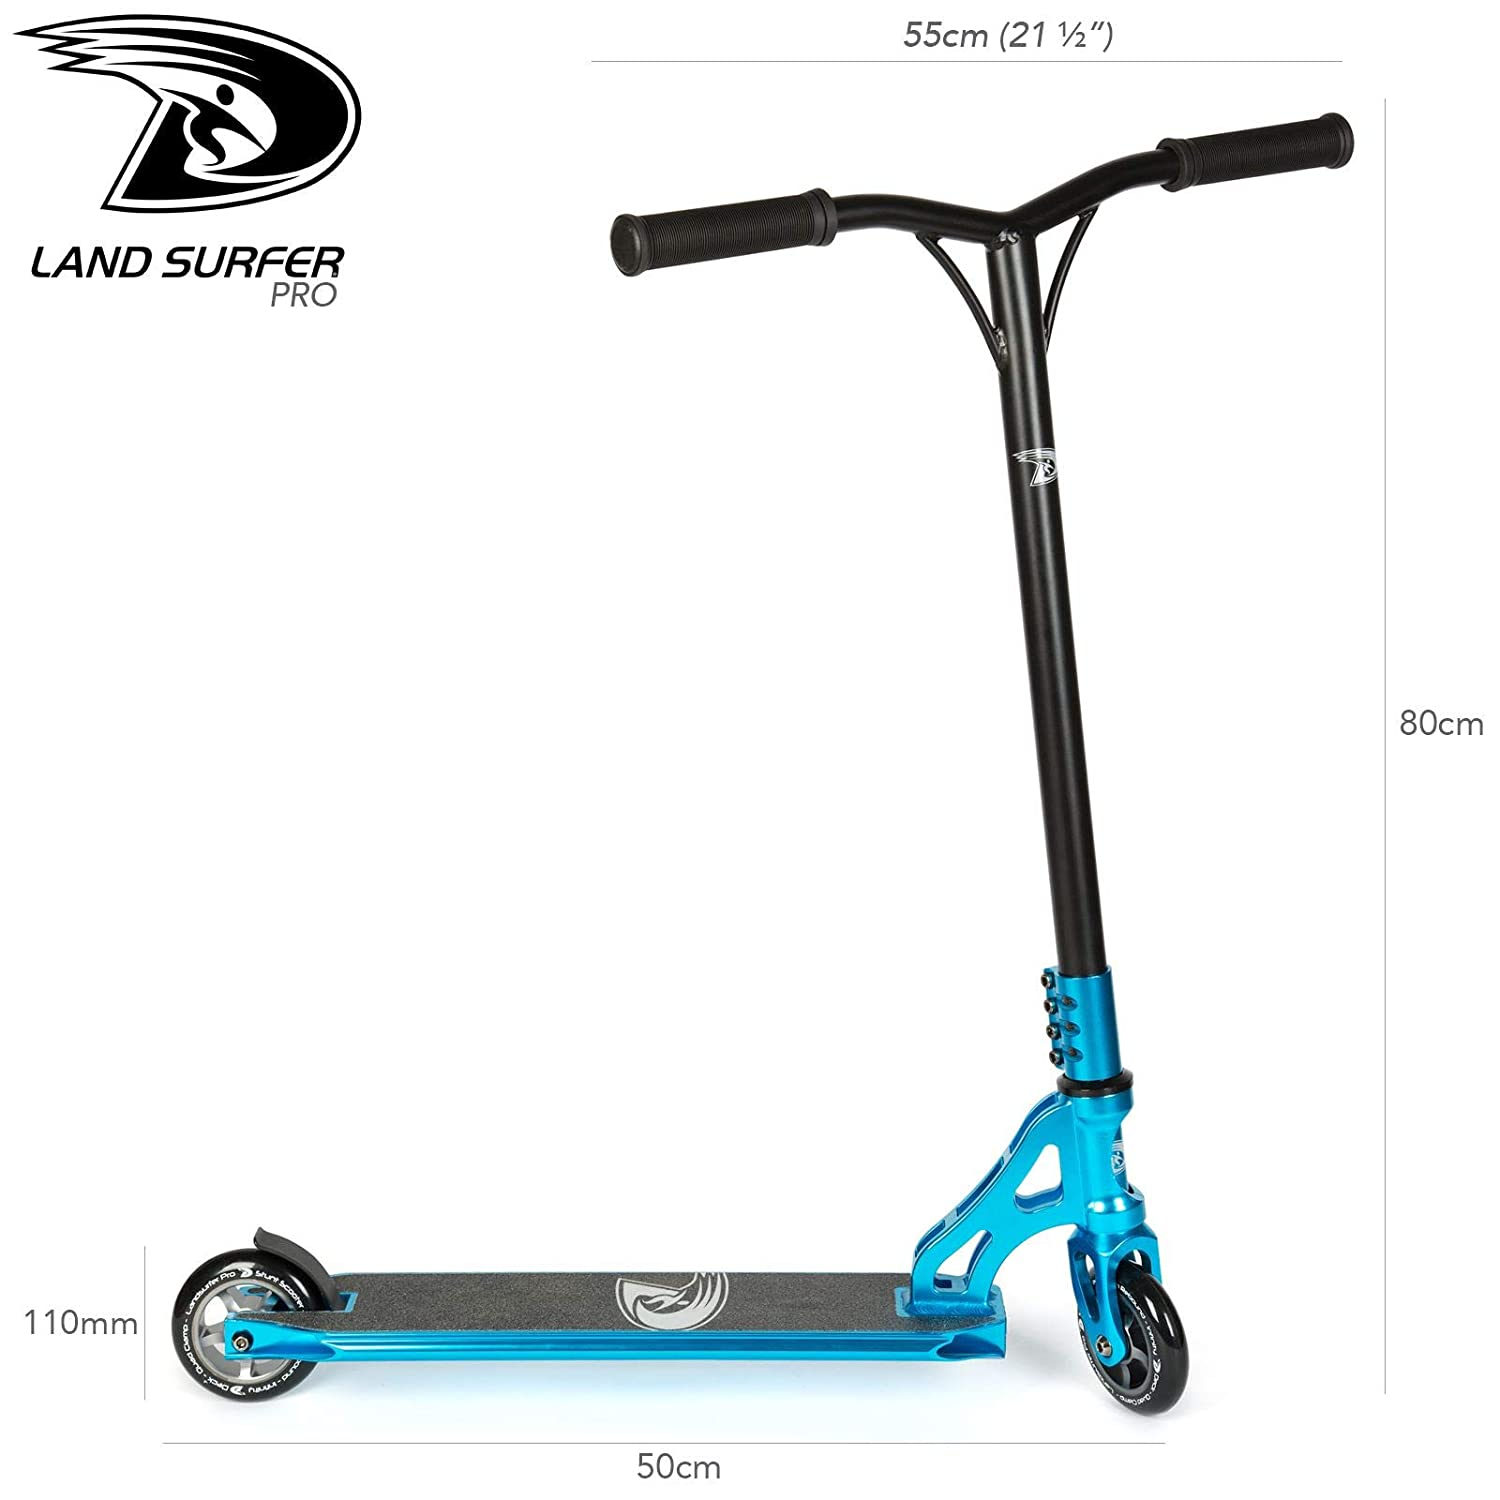 Amazon.com: Land-Surfer PRO Stunt Scooter - Blue: Sports ...